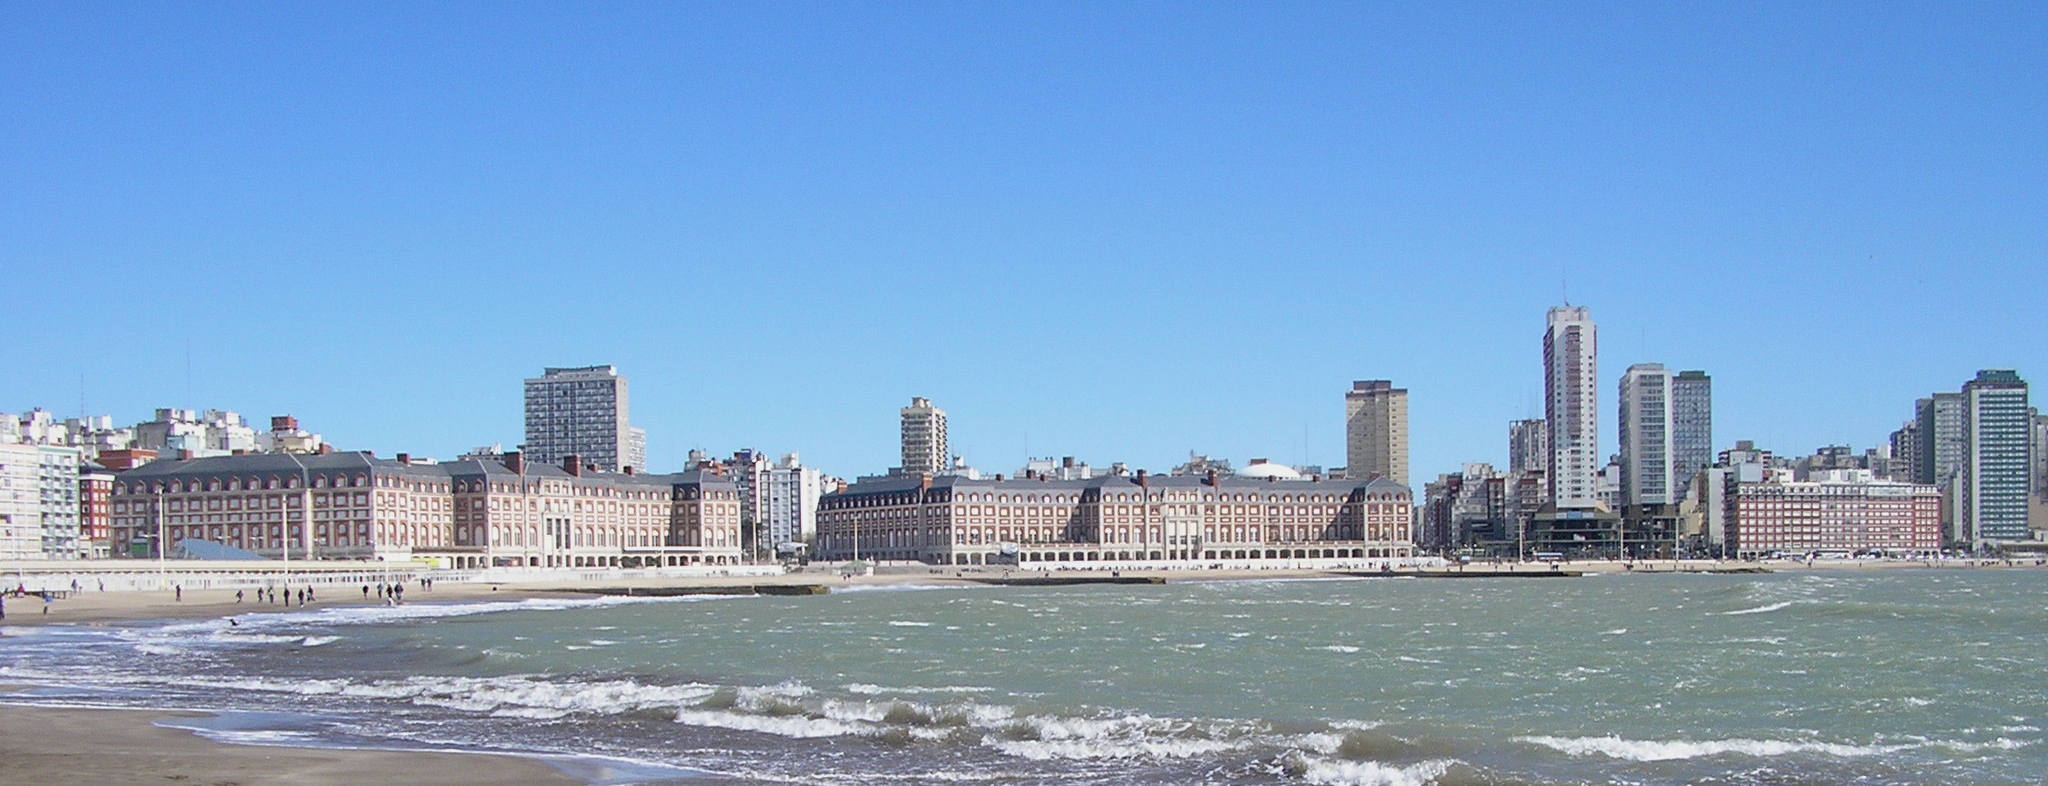 File:Mar del Plata panorámica.jpg - Wikimedia Commons